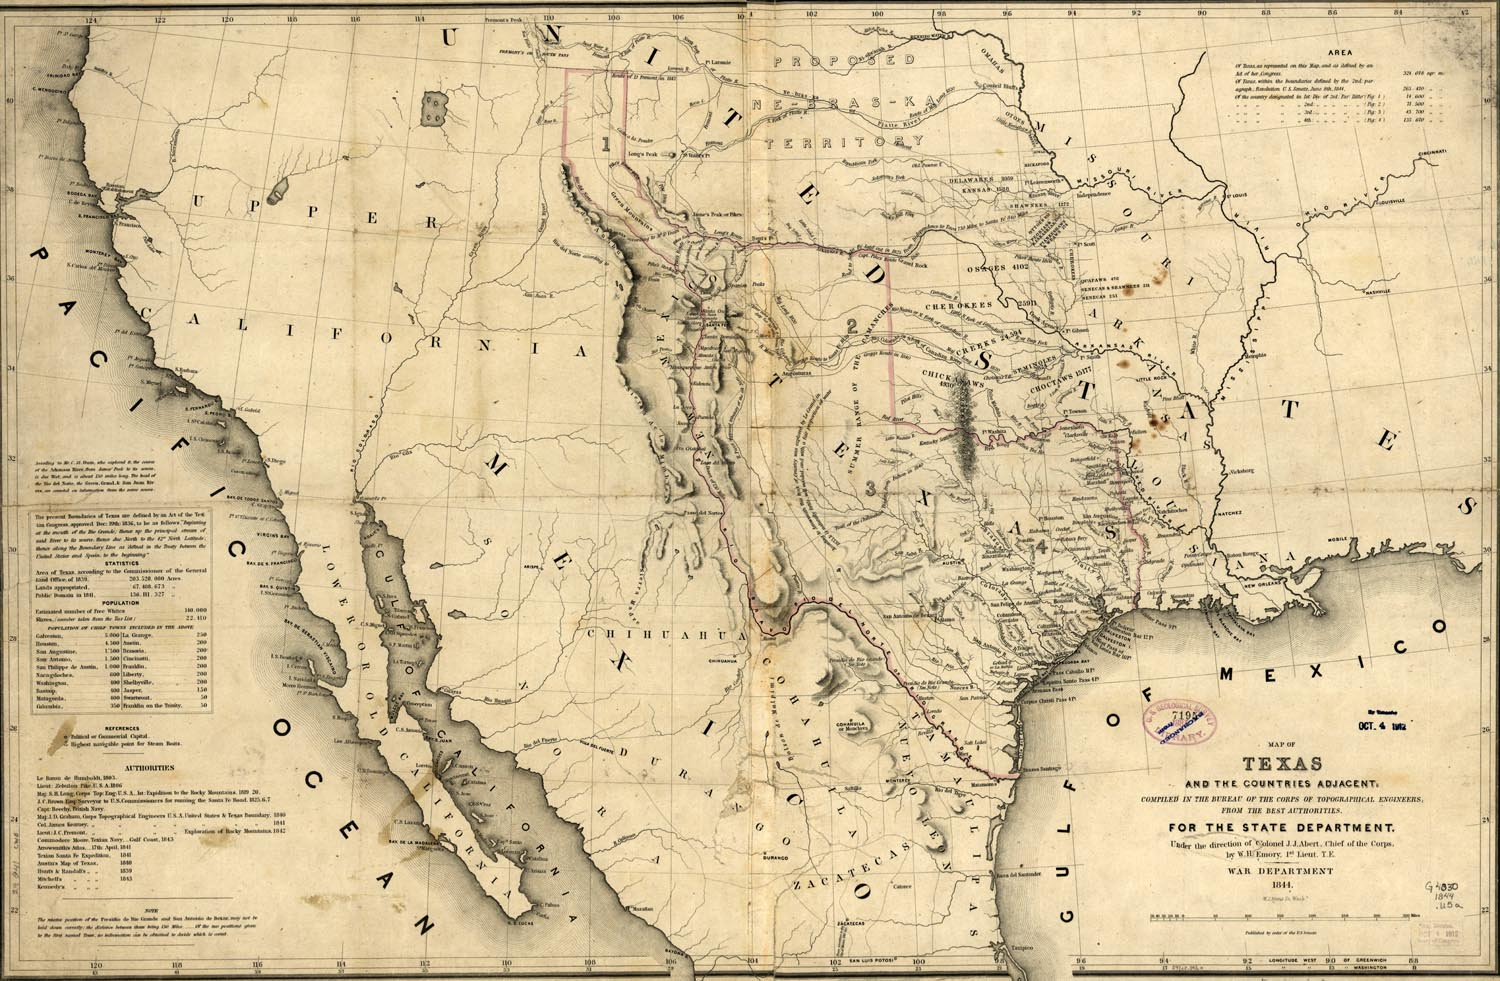 Maps Of The Republic Of Texas - Texas Map 1846